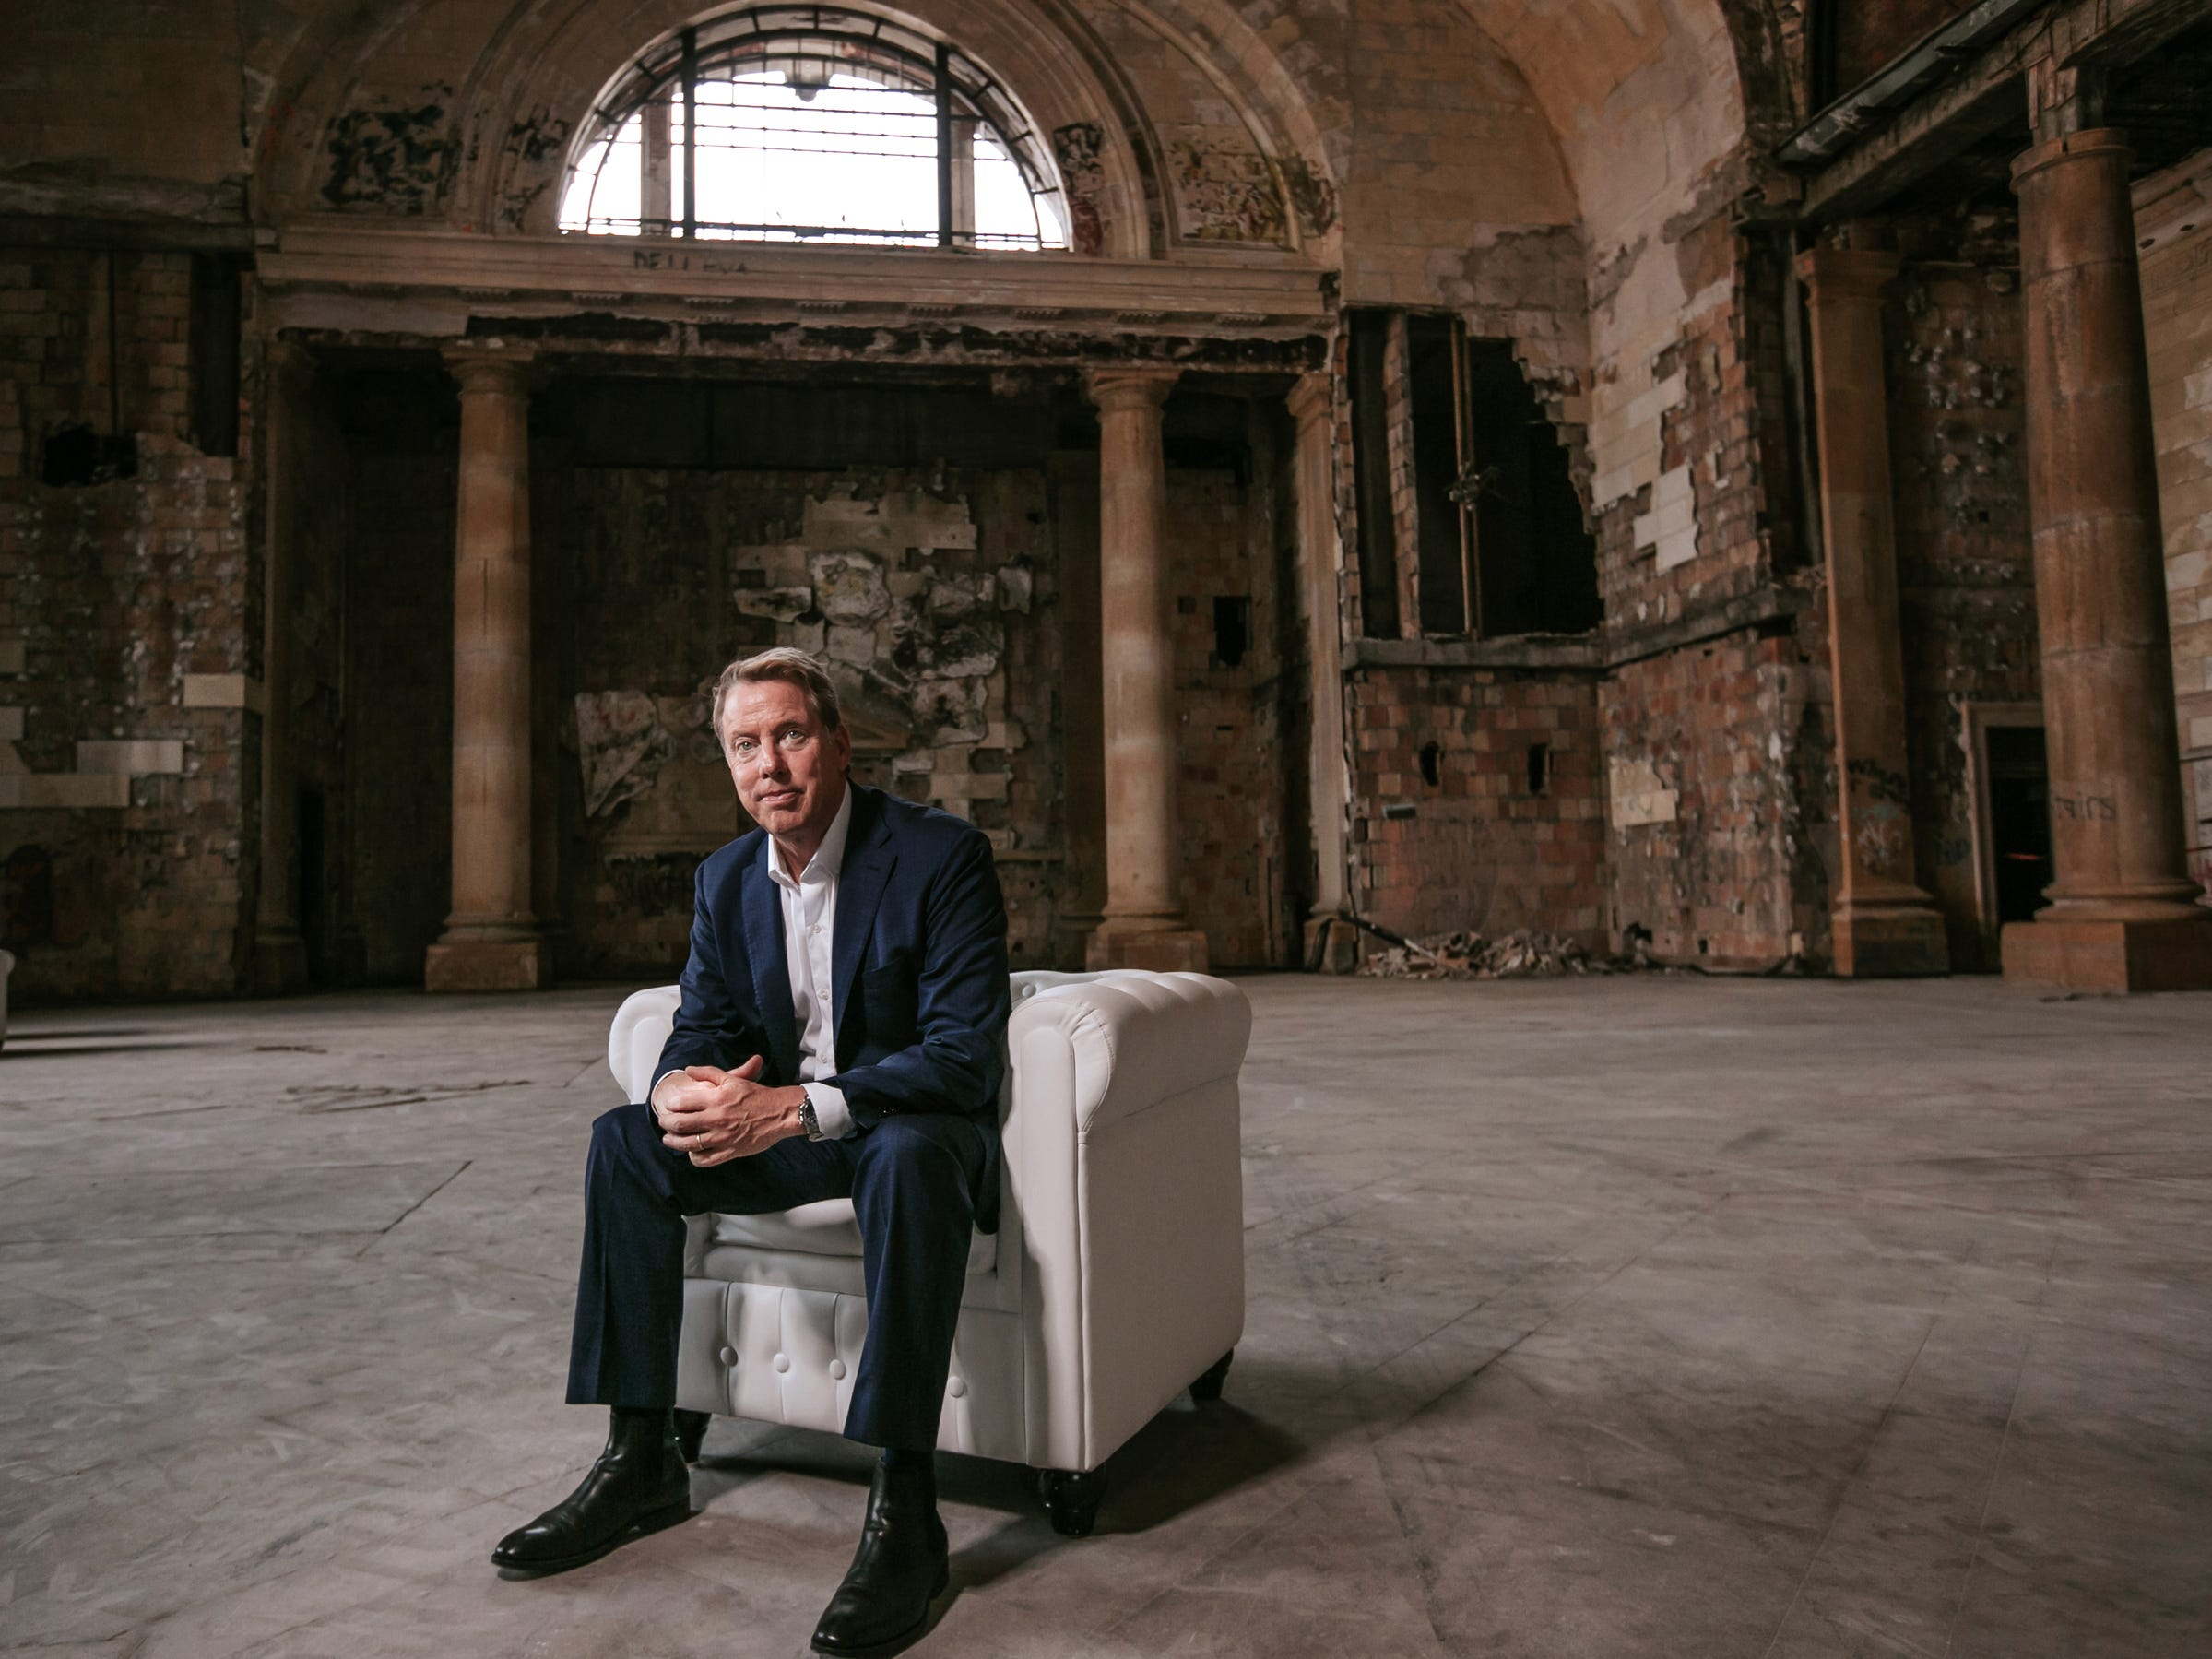 Ford Motor Co. Executive Chairman Bill Ford Jr. poses for a photo in Michigan Central Station in Detroit's Corktown neighborhood in Detroit on Wednesday, June 13, 2018.Ford recently purchased the long-vacant train station with plans to renovate and make it a hub of a campus for advanced automotive technology.